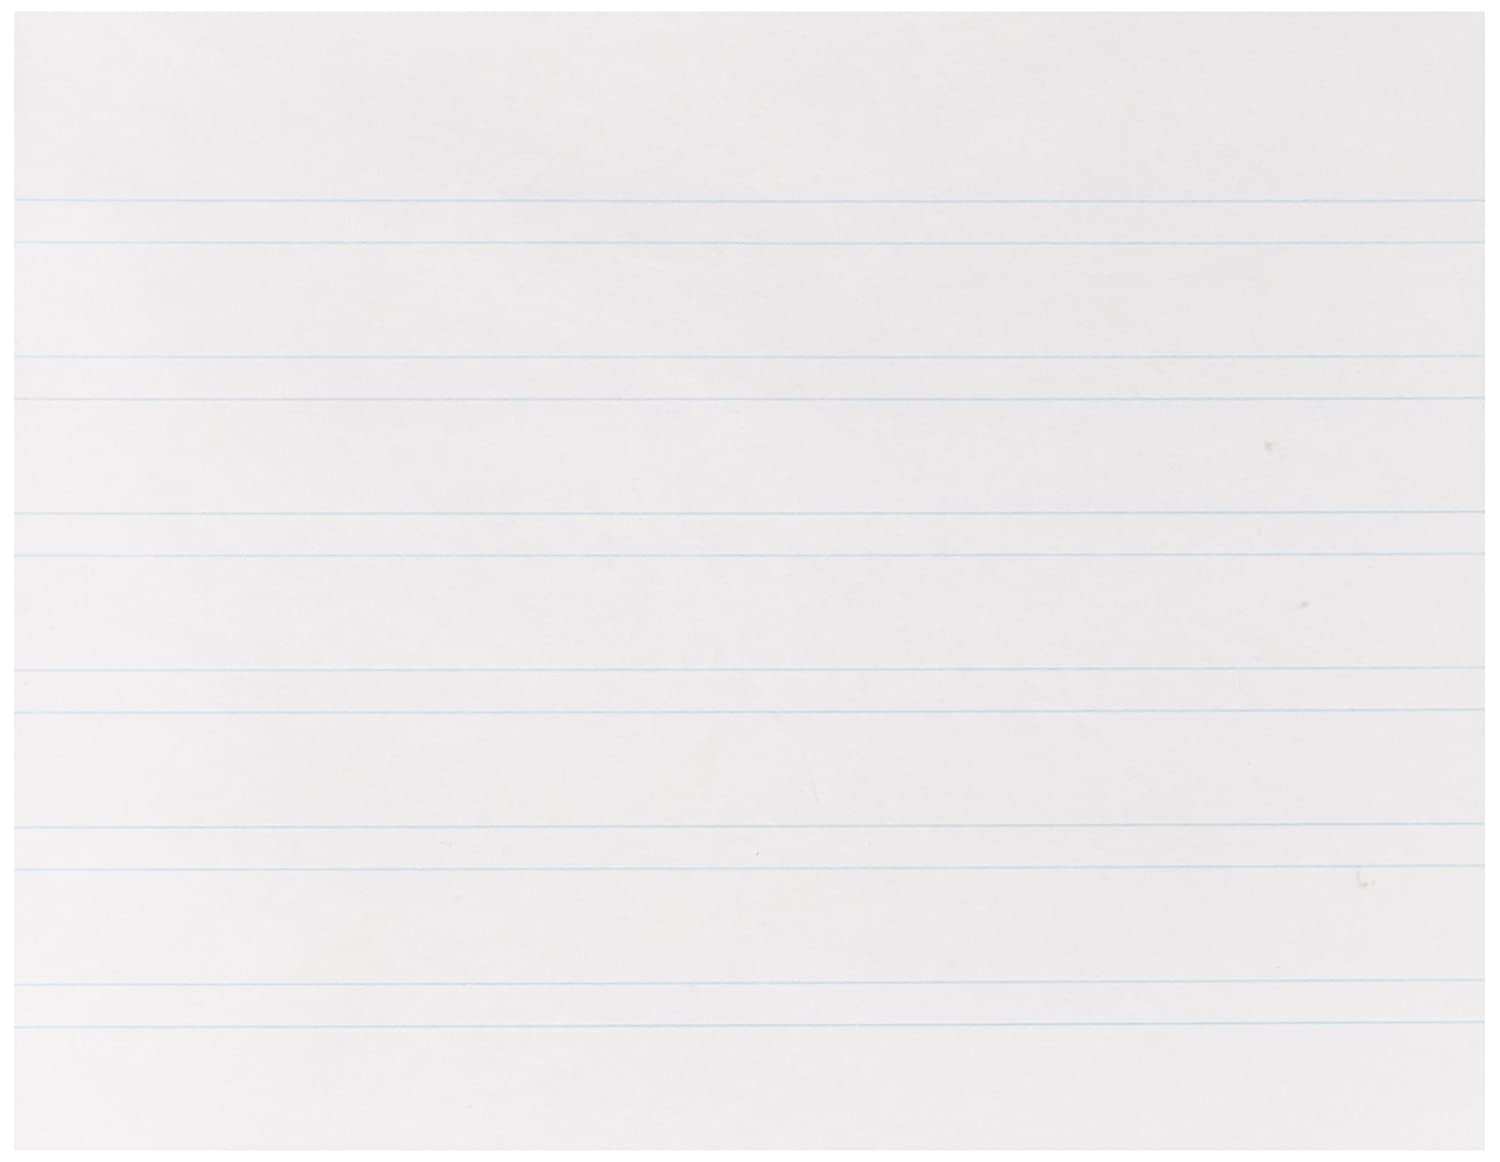 wide lined paper I modified my own lined paper template and made it 4 lined writing paper template for english letters i am sharing that here with all my visitors to get.